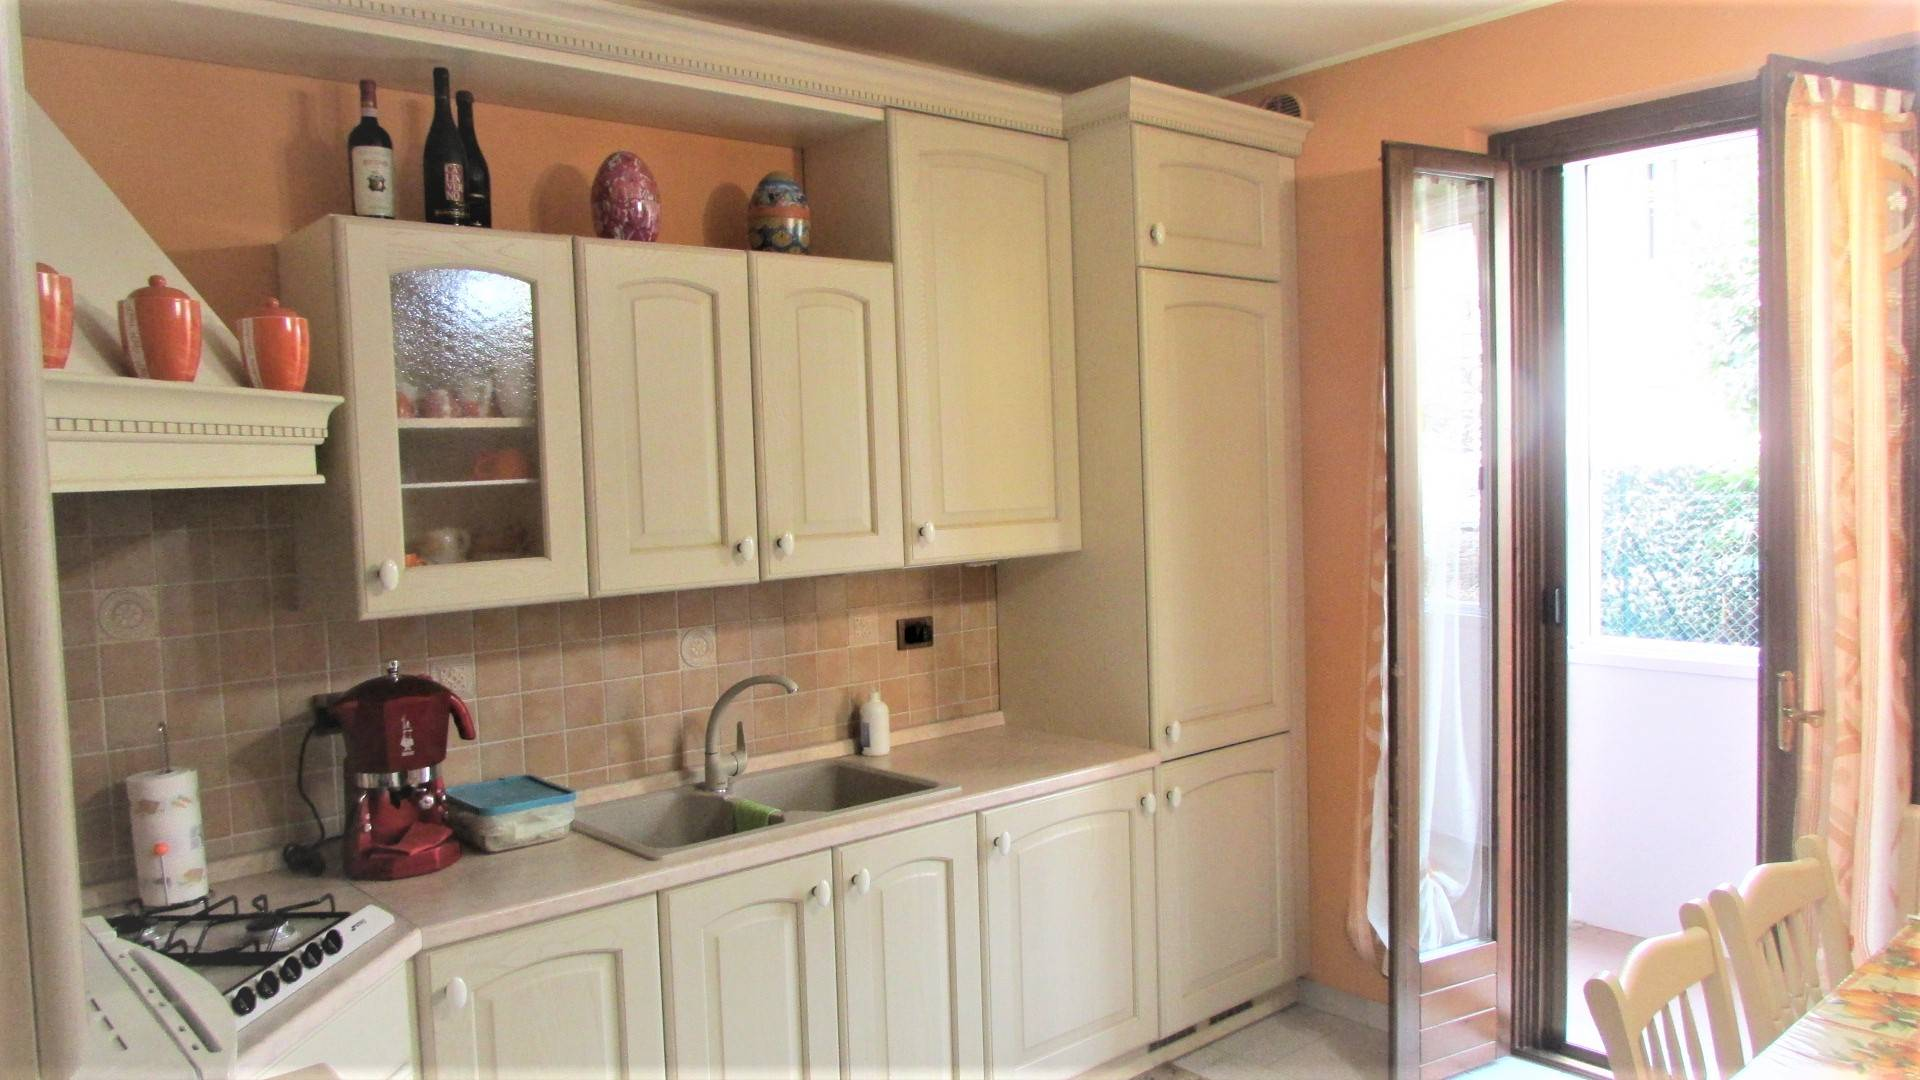 SAN GREGORIO, VERONELLA, Terraced house for sale, Excellent Condition, Heating Individual heating system, Energetic class: E, Epi: 122,7 kwh/m2 year,